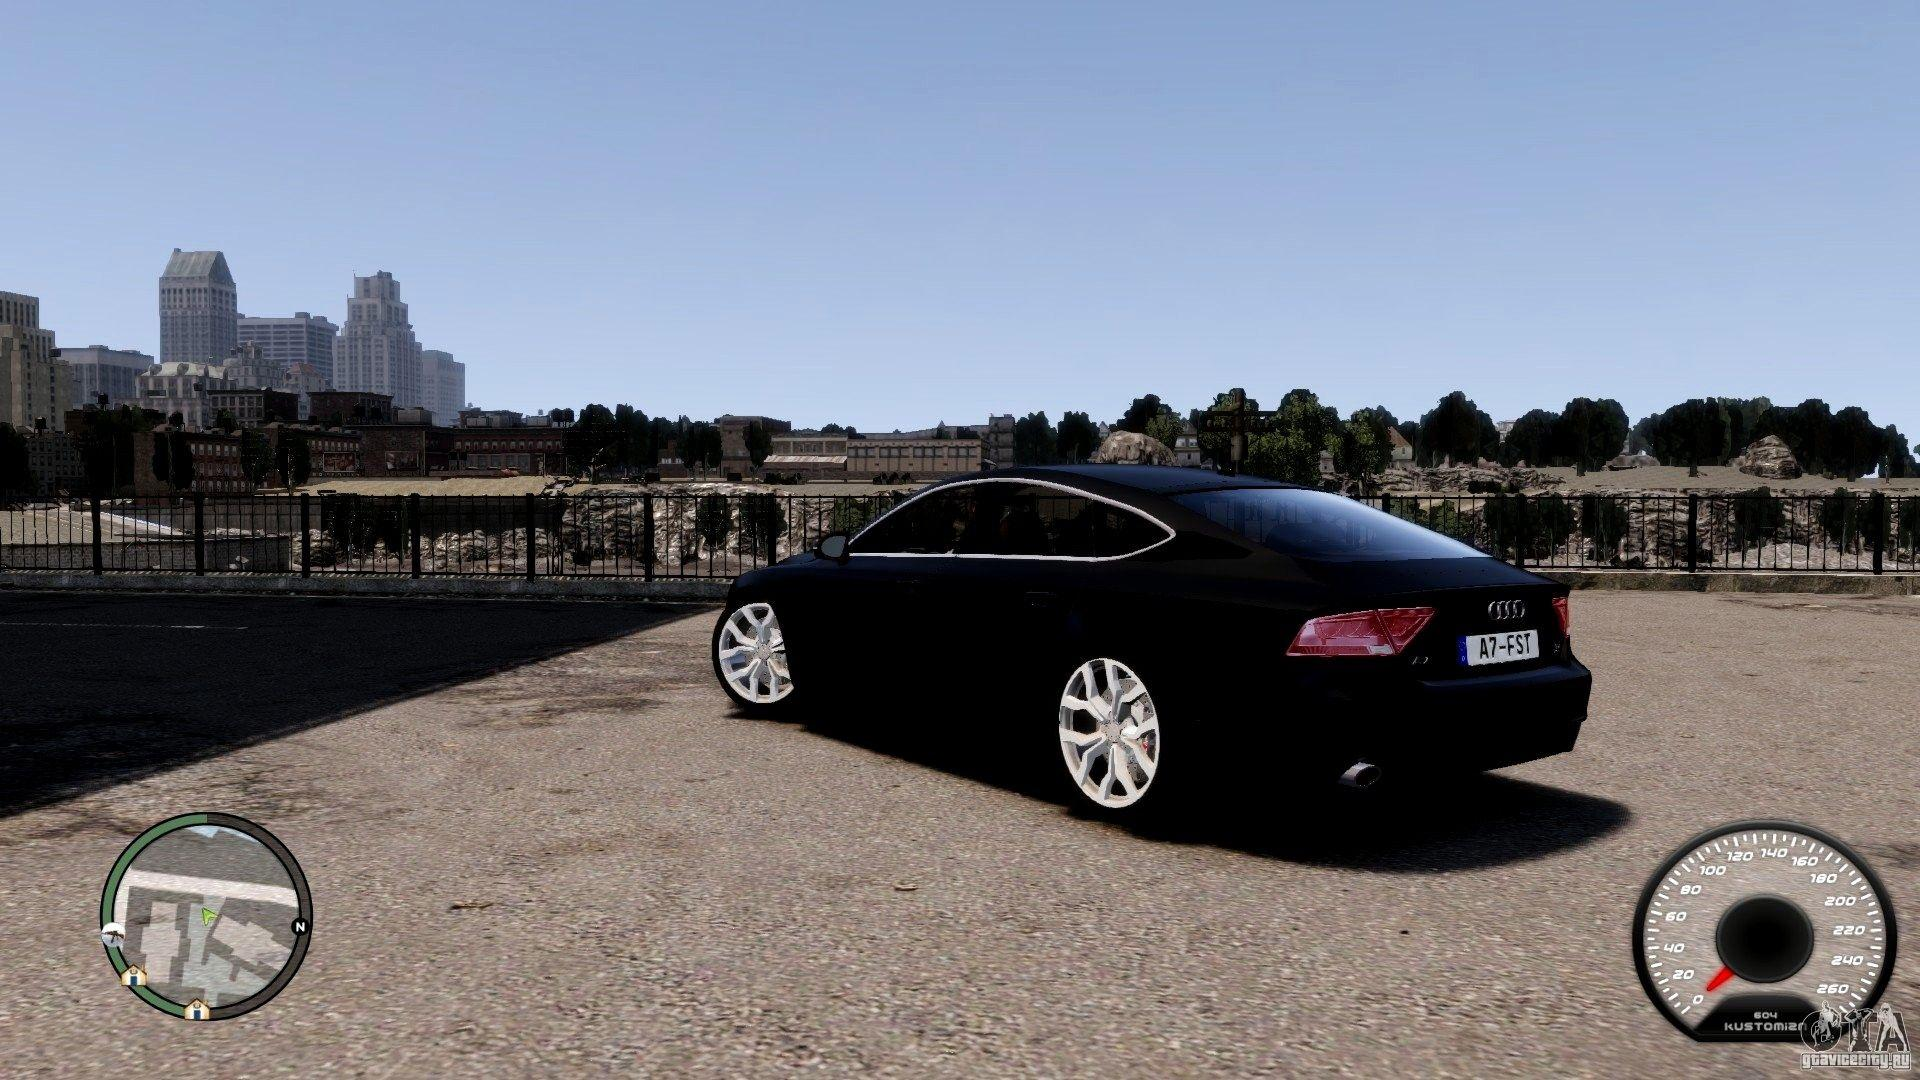 Audi A7 Wallpapers HD Download